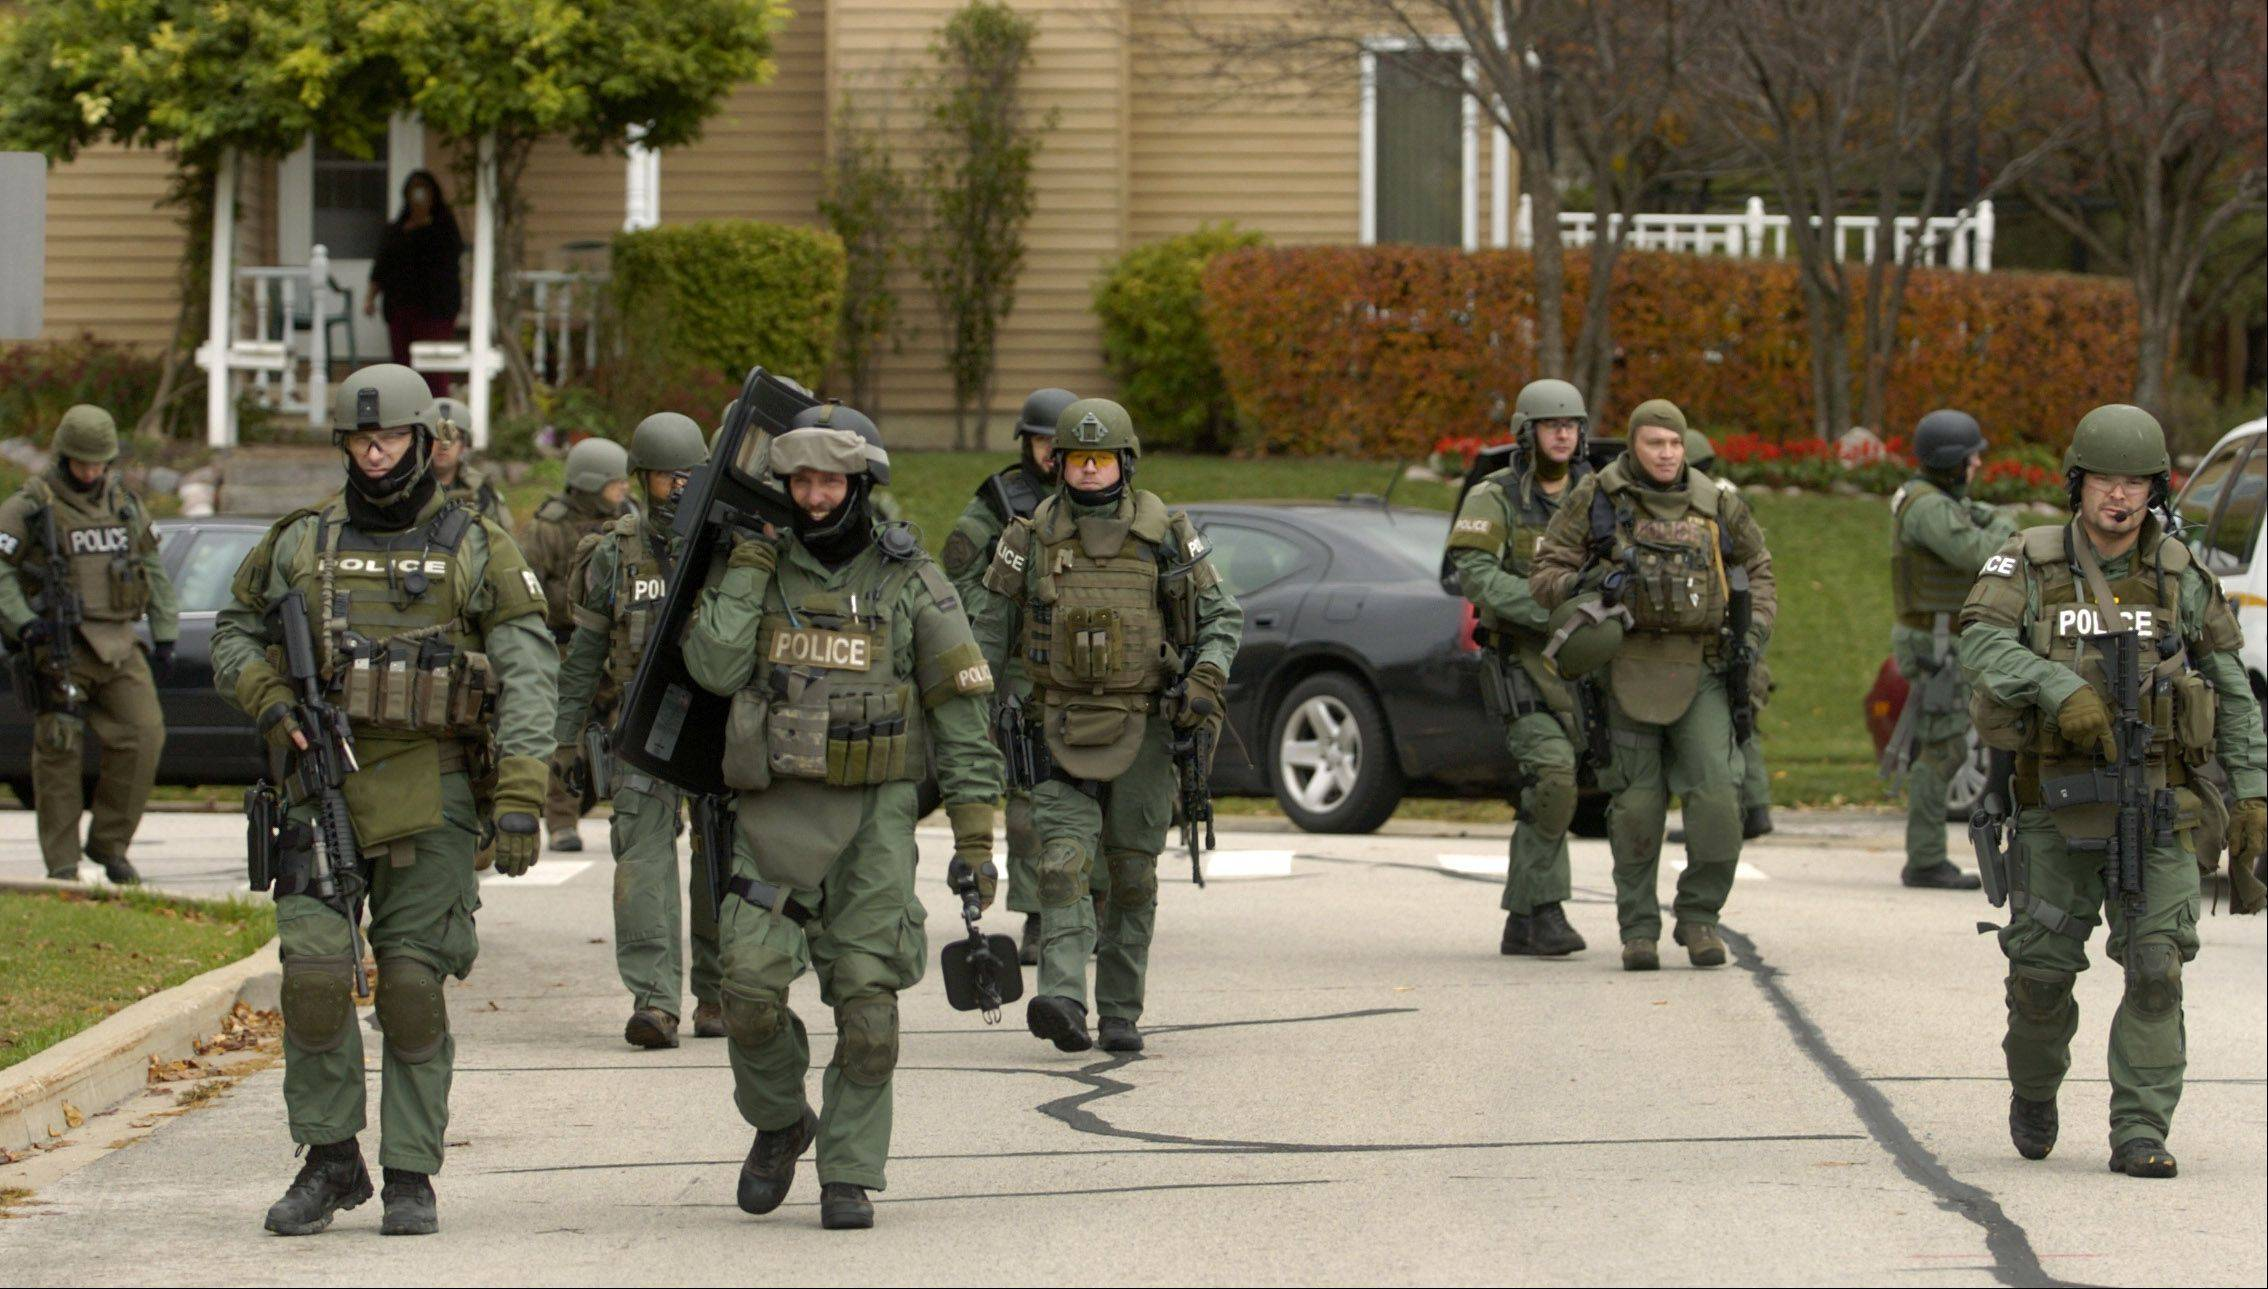 Members of the Northern Illinois Police Alarm System leave the scene of a police standoff Friday on Raven Court in Gurnee.